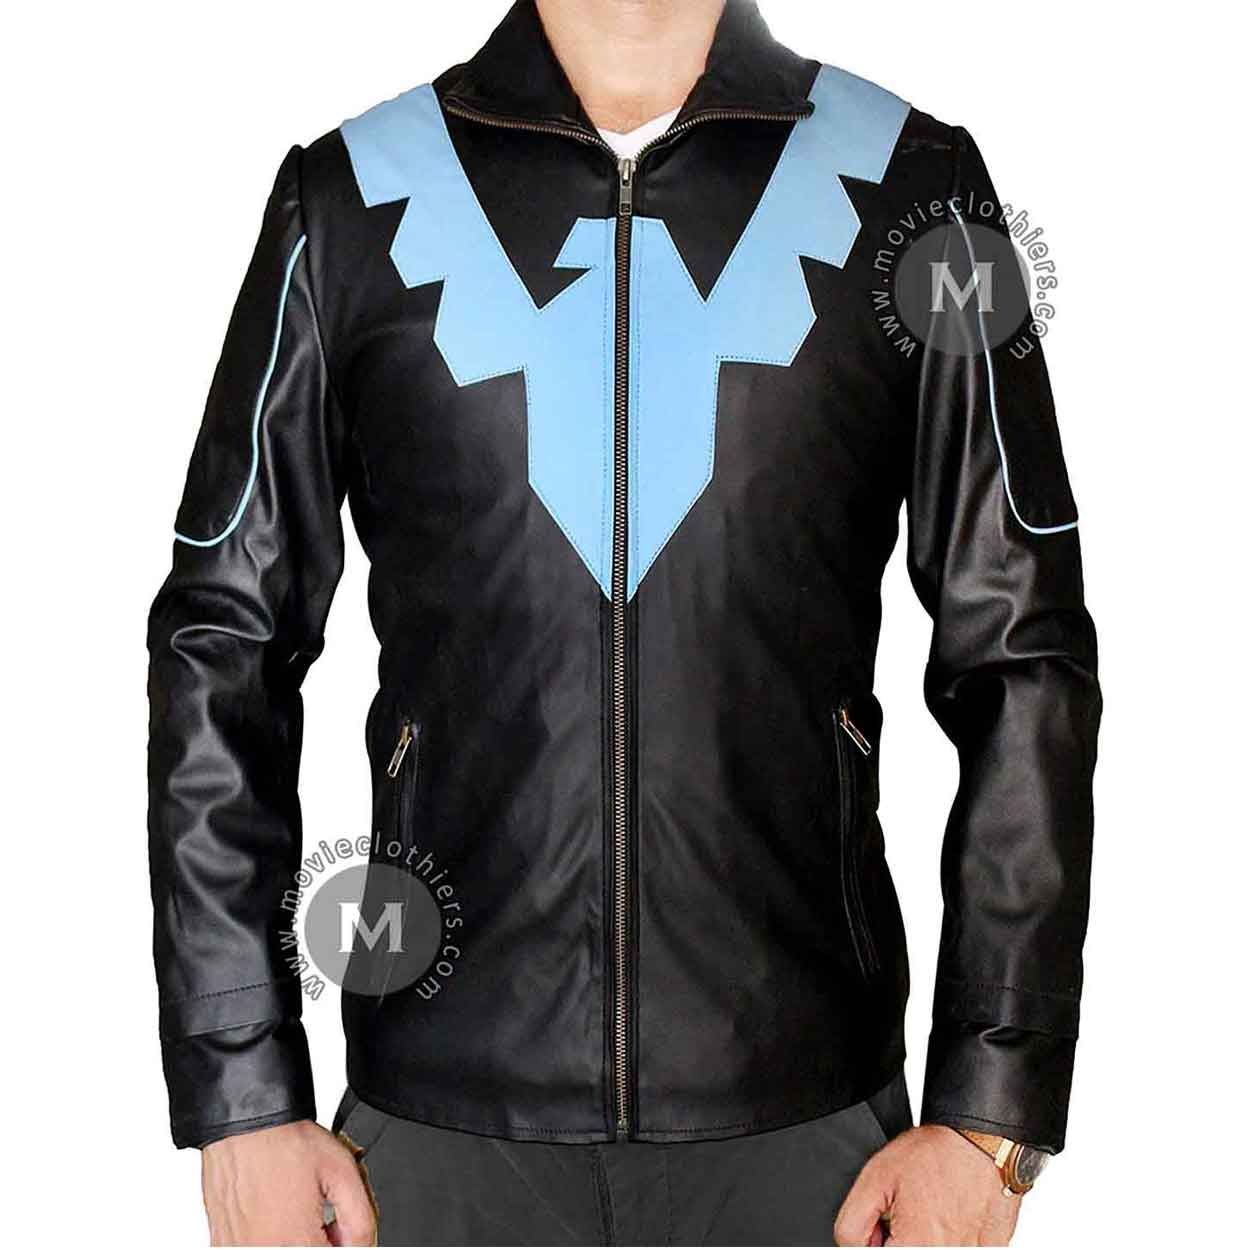 Batman Nightwing Leather Jacket For Sale-2710